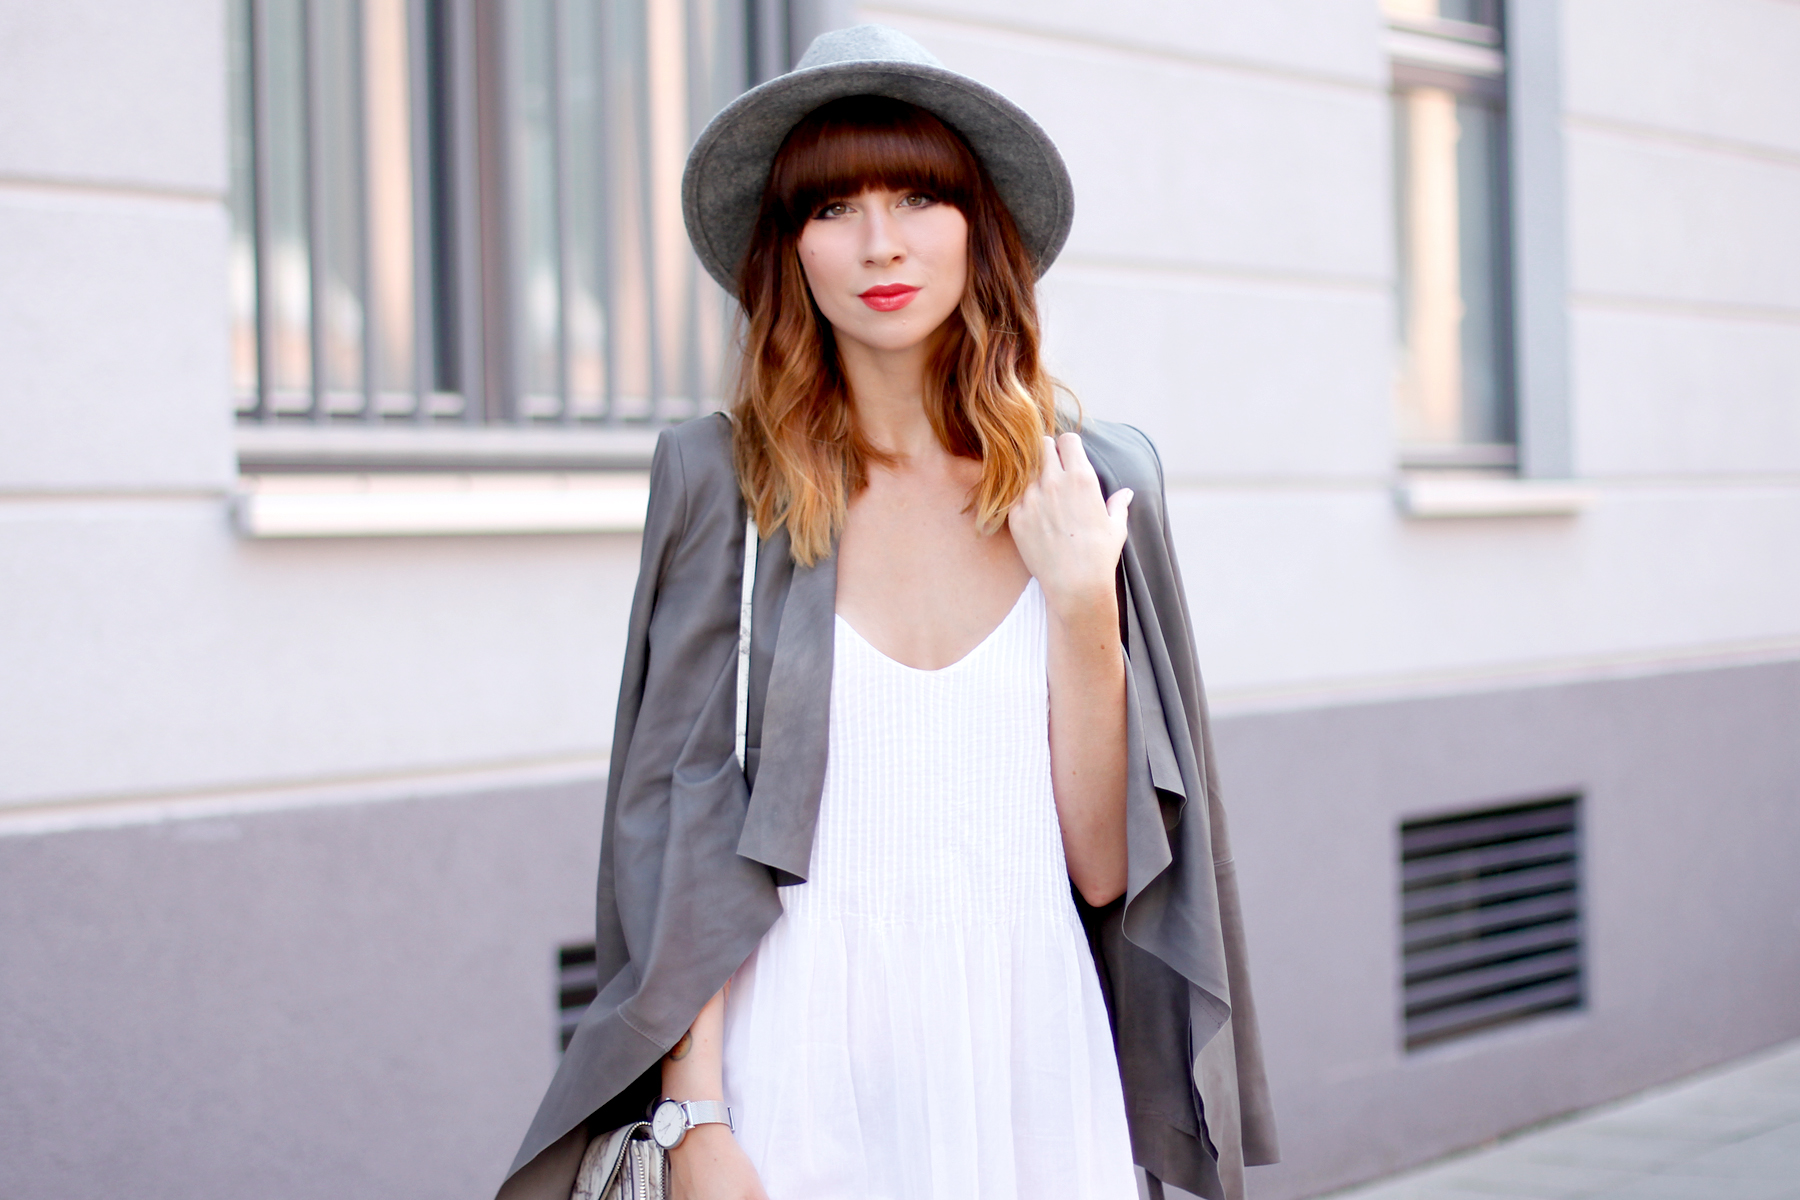 <!--:en-->Grey And White Minimal Chic<!--:--><!--:de-->Minimalistisch in Grau und Weiß<!--:-->